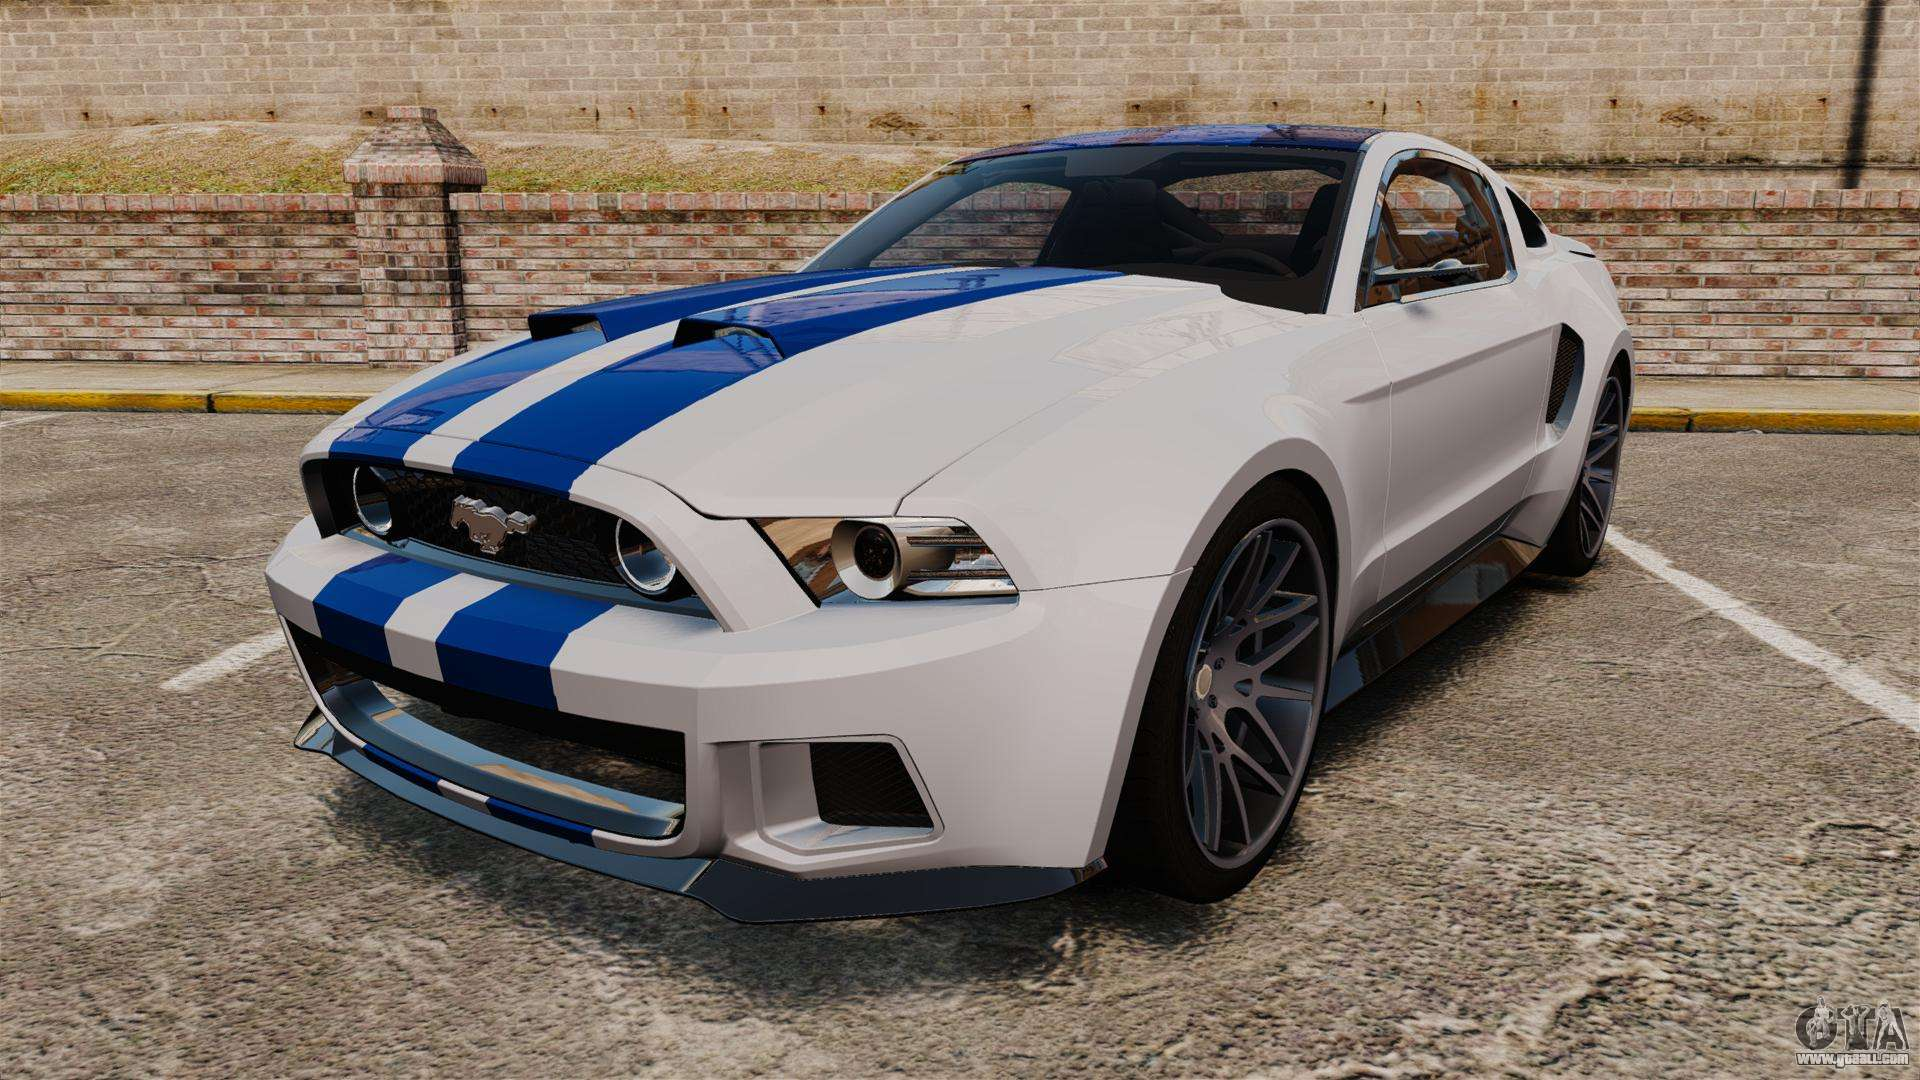 ford mustang gt nfs rivals with 37405 Ford Mustang Gt 2013 Nfs Edition on Watch together with Bmw M3 Gtr Mod Mw as well Need For Speed Rivals Mustang 2015 additionally Nfs Most Wanted Mercedes Benz C63 Amg Coupe Widebody moreover Ford Mustang Need For Speed Rivals 4451531.